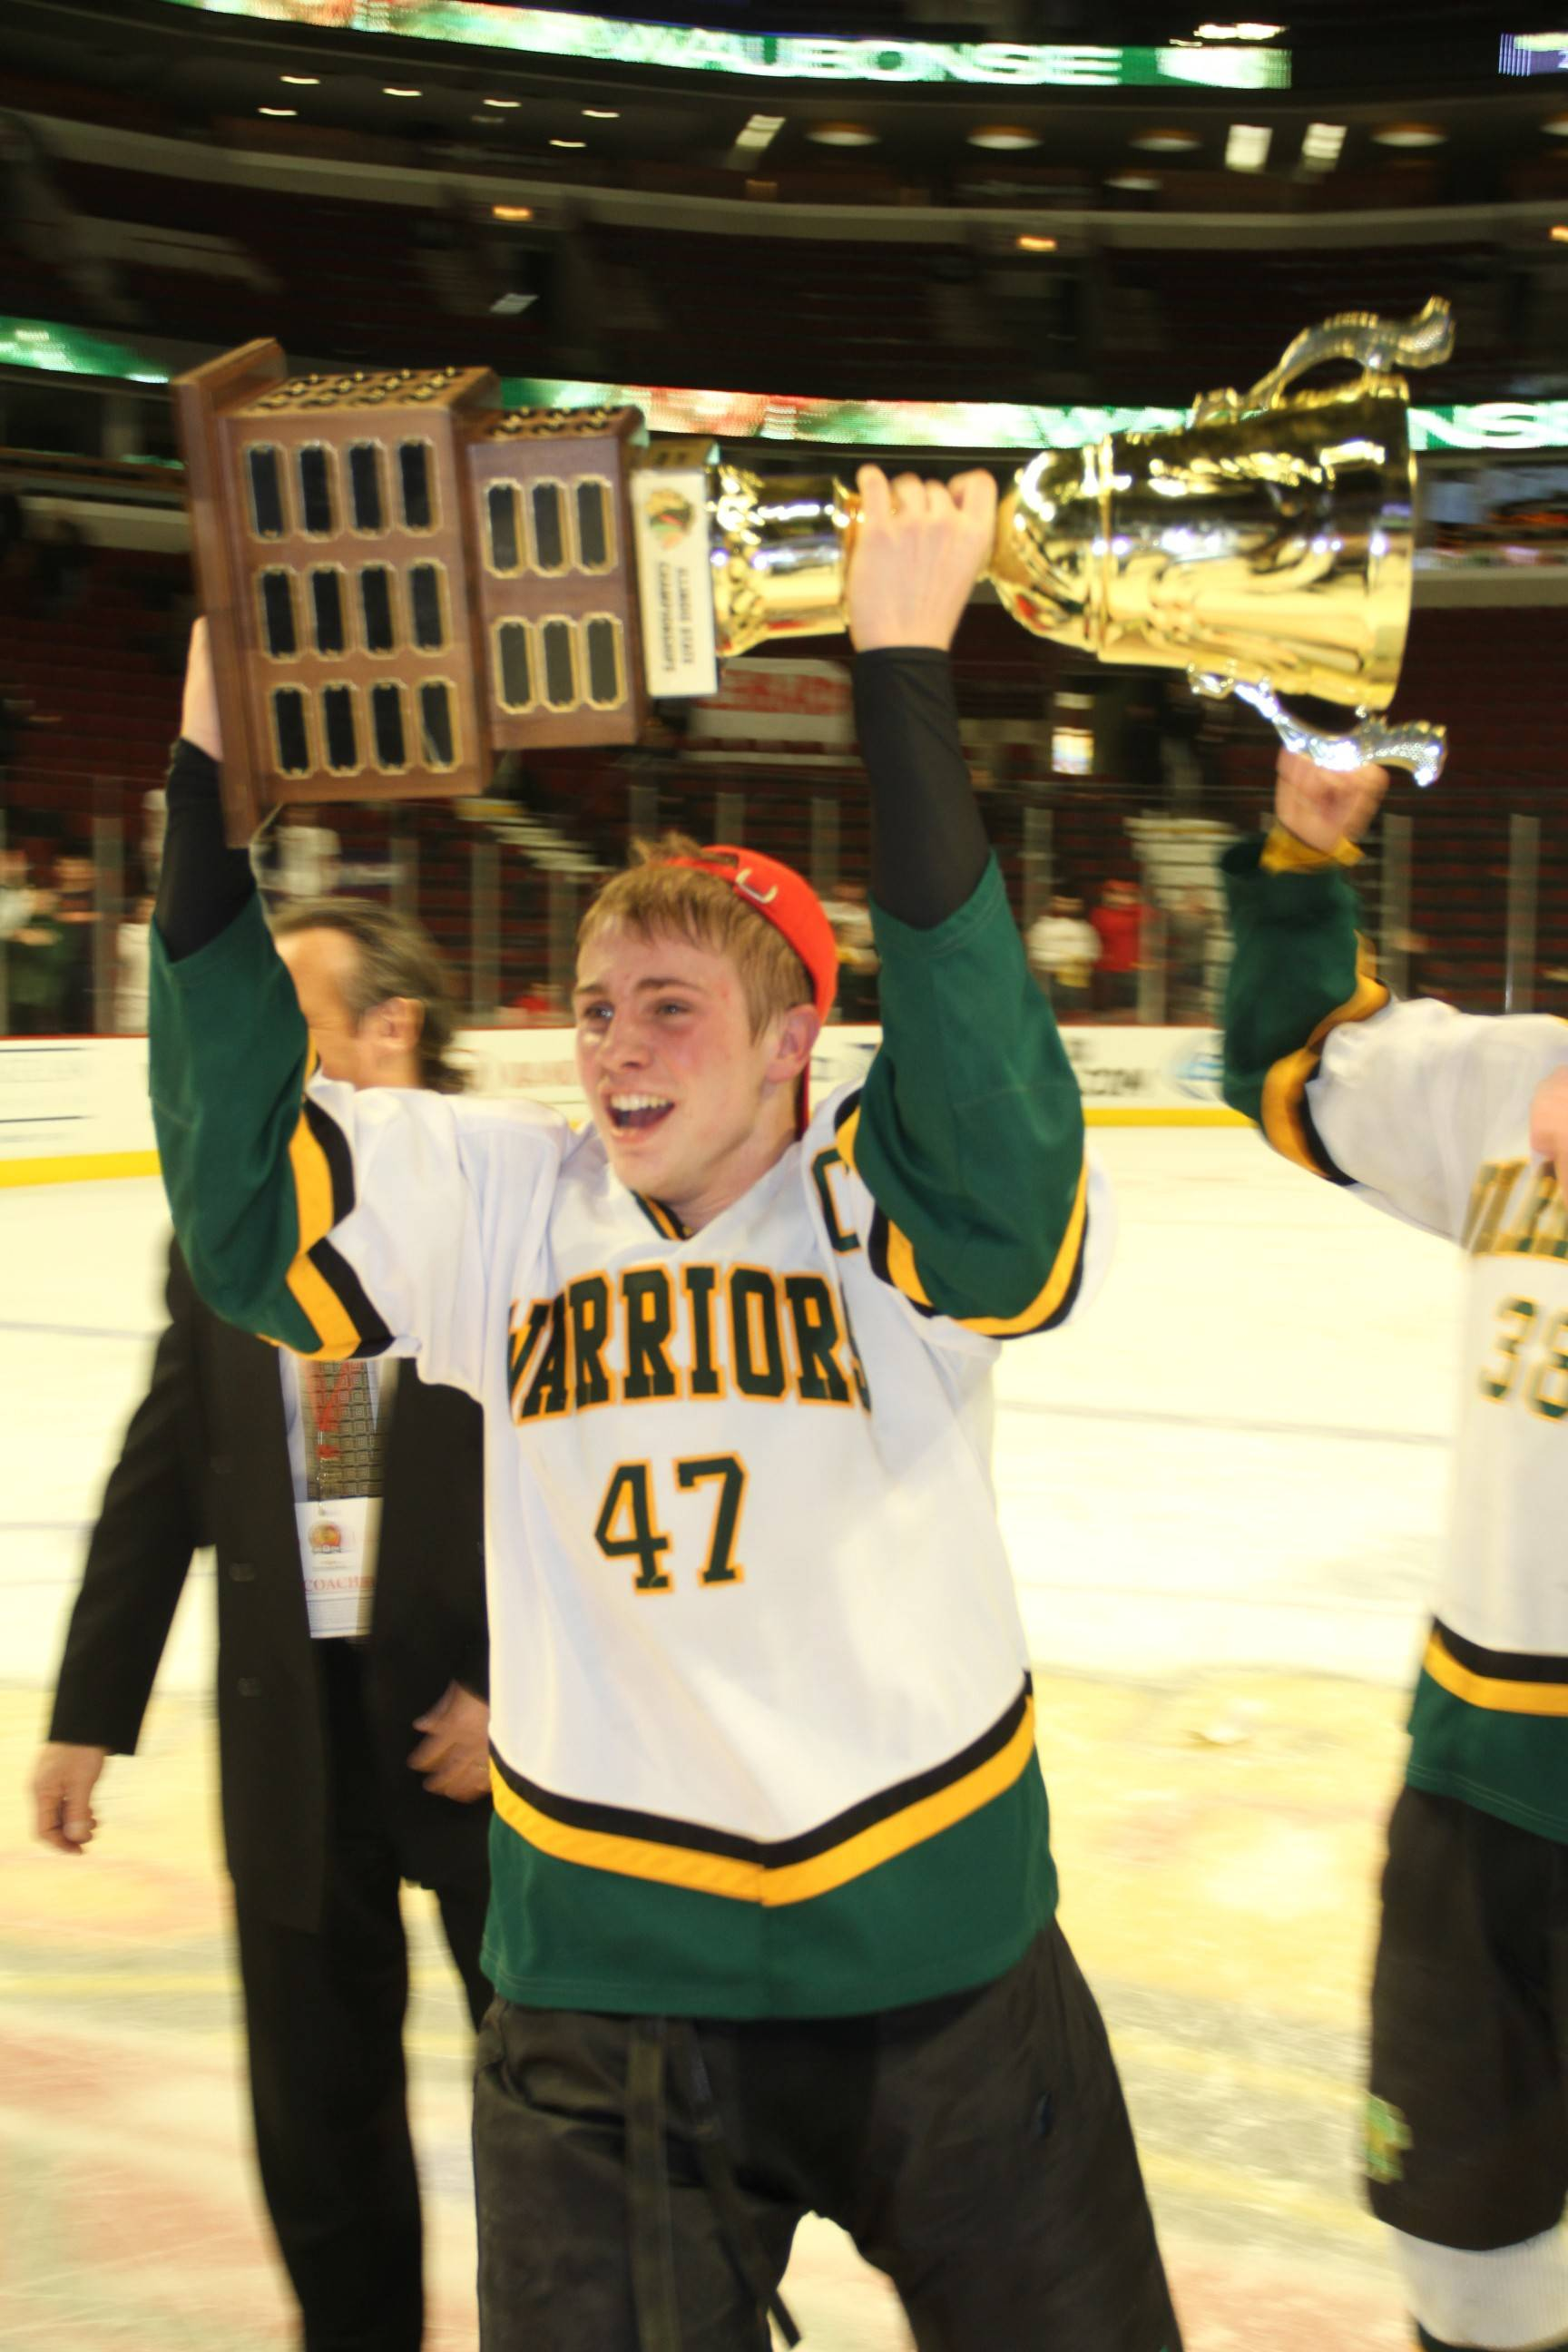 Waubonsie Valley's Ben Vietri skates with the Combined Division championship trophy after a 3-0 victory over Glenbard on Thursday at the United Center.